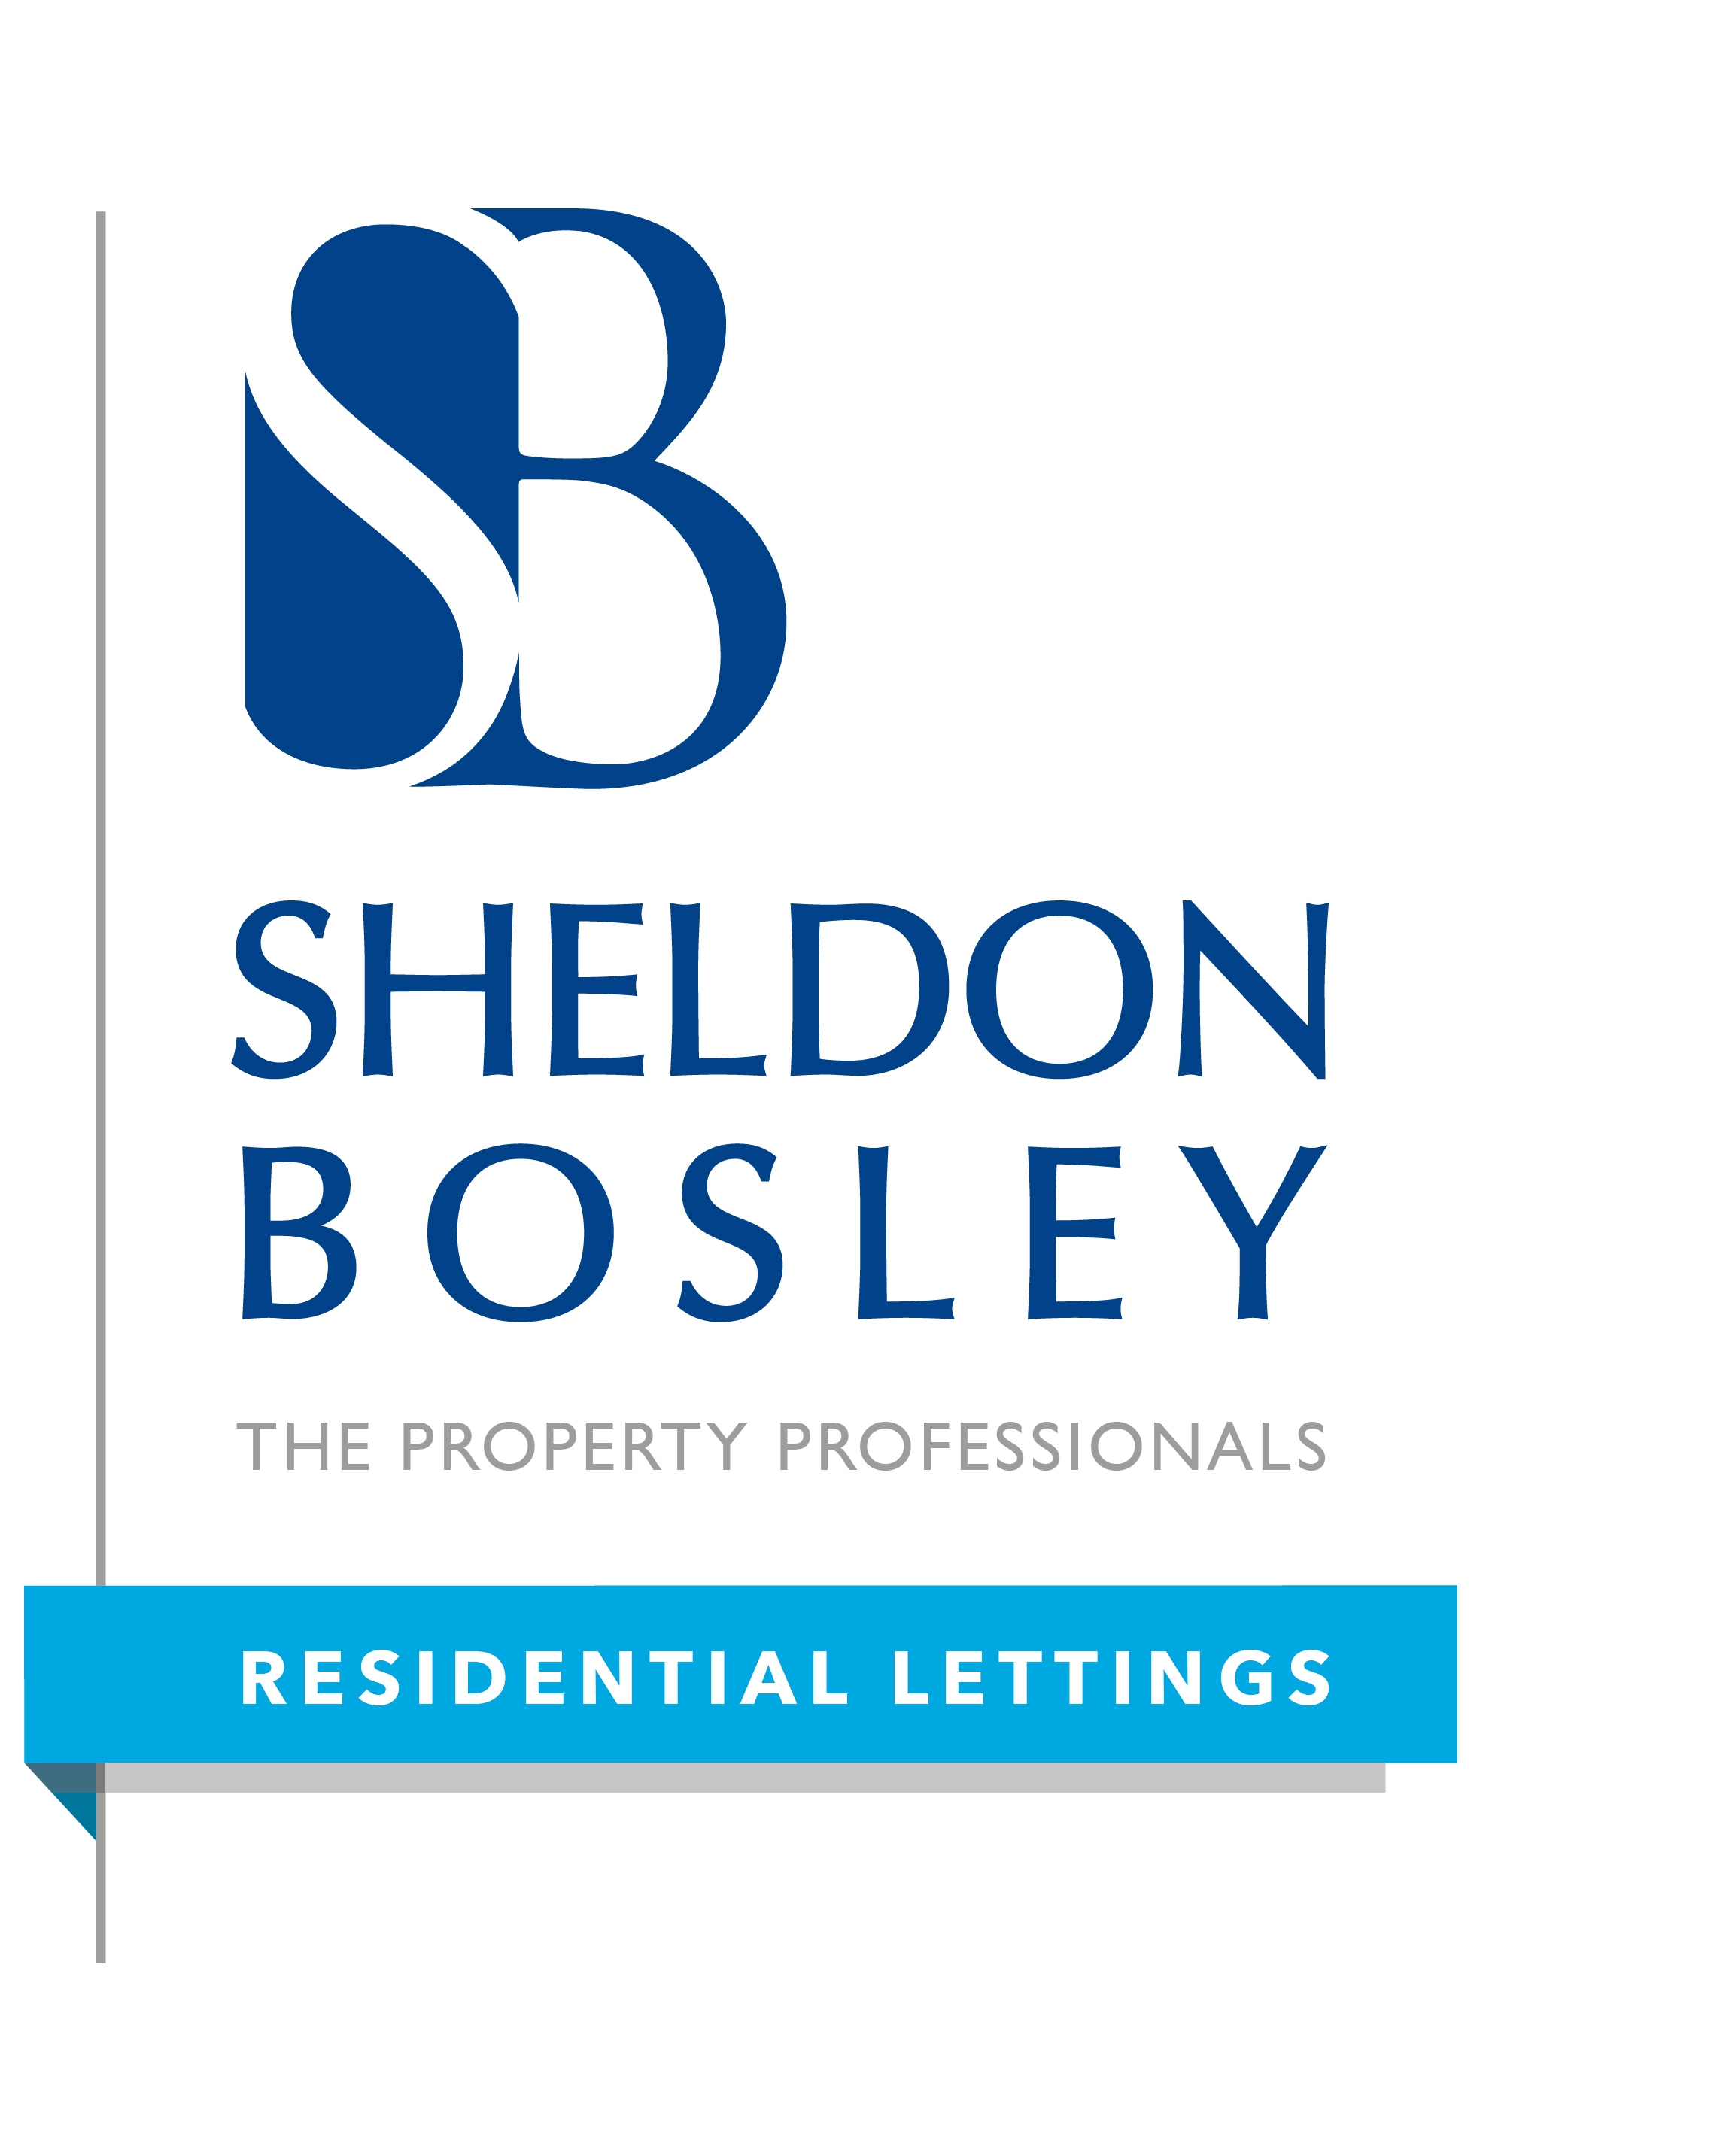 Sheldon Bosley Lettings Agents in Shipston on Stour